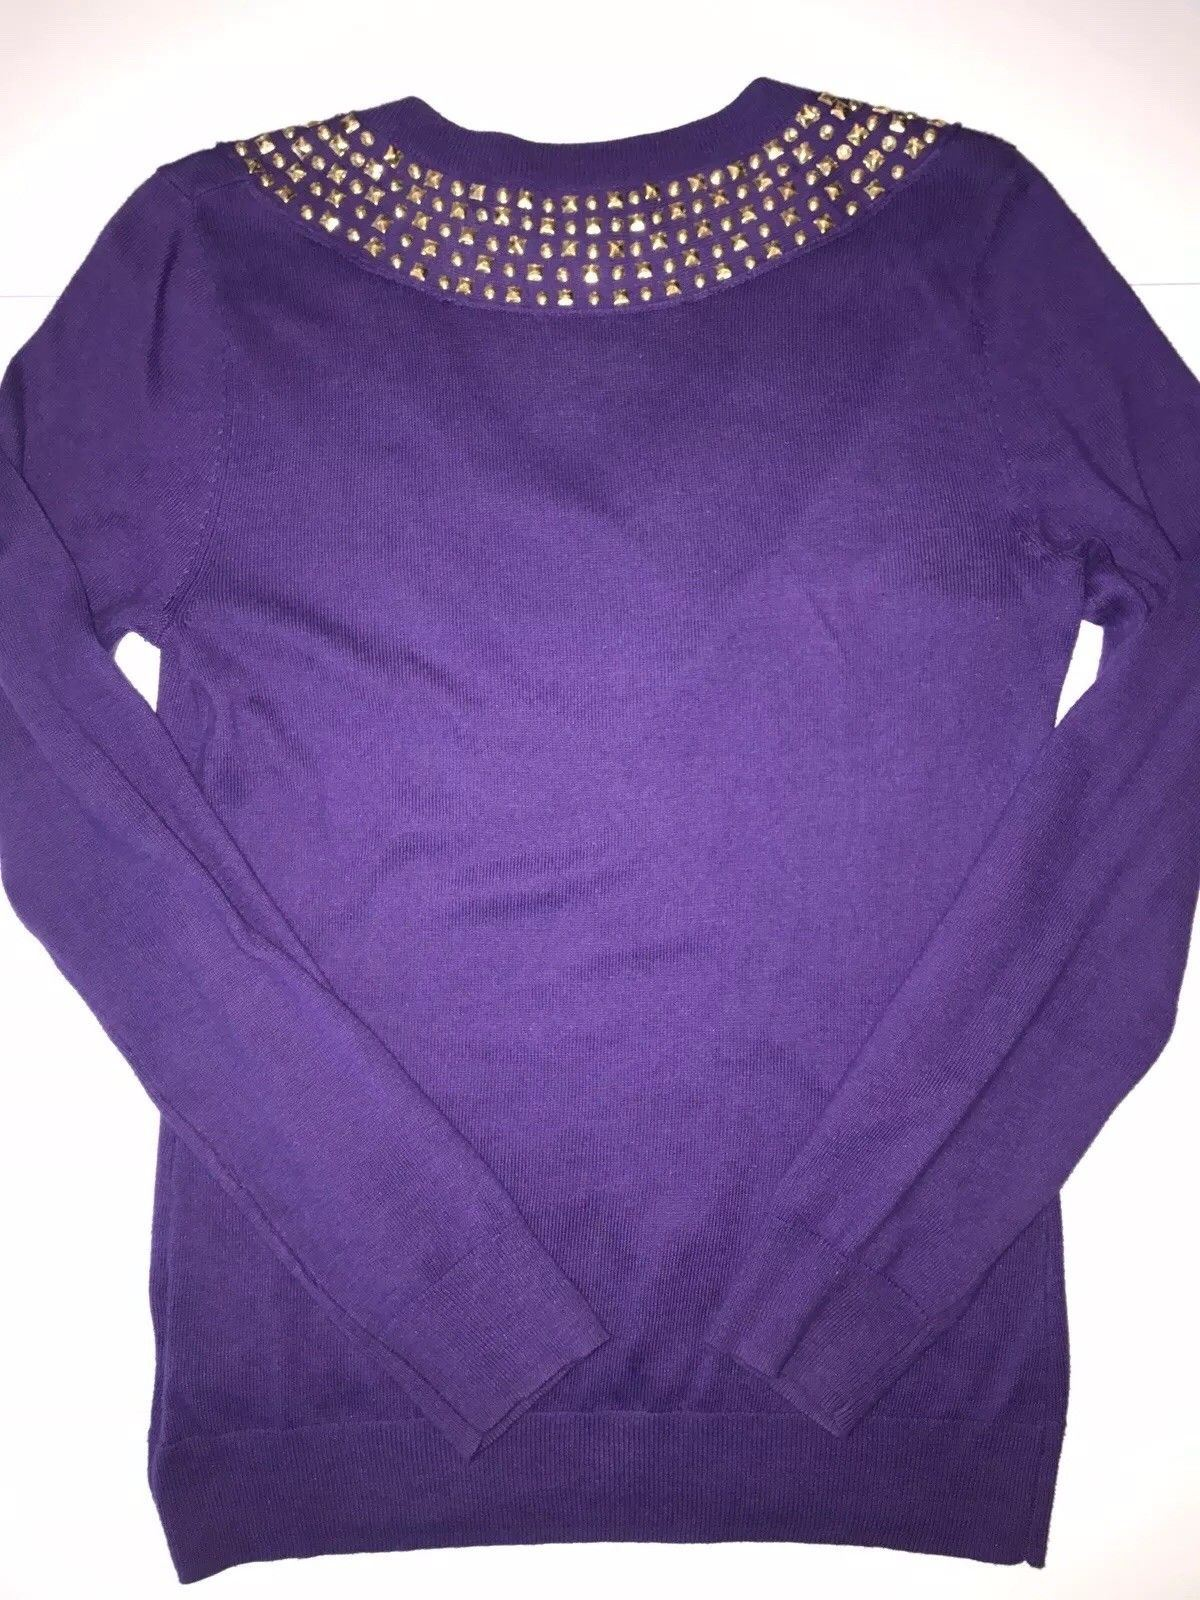 Michael Kors Women's Long Sleeve Gold Studded  Purple Sweater Size XS